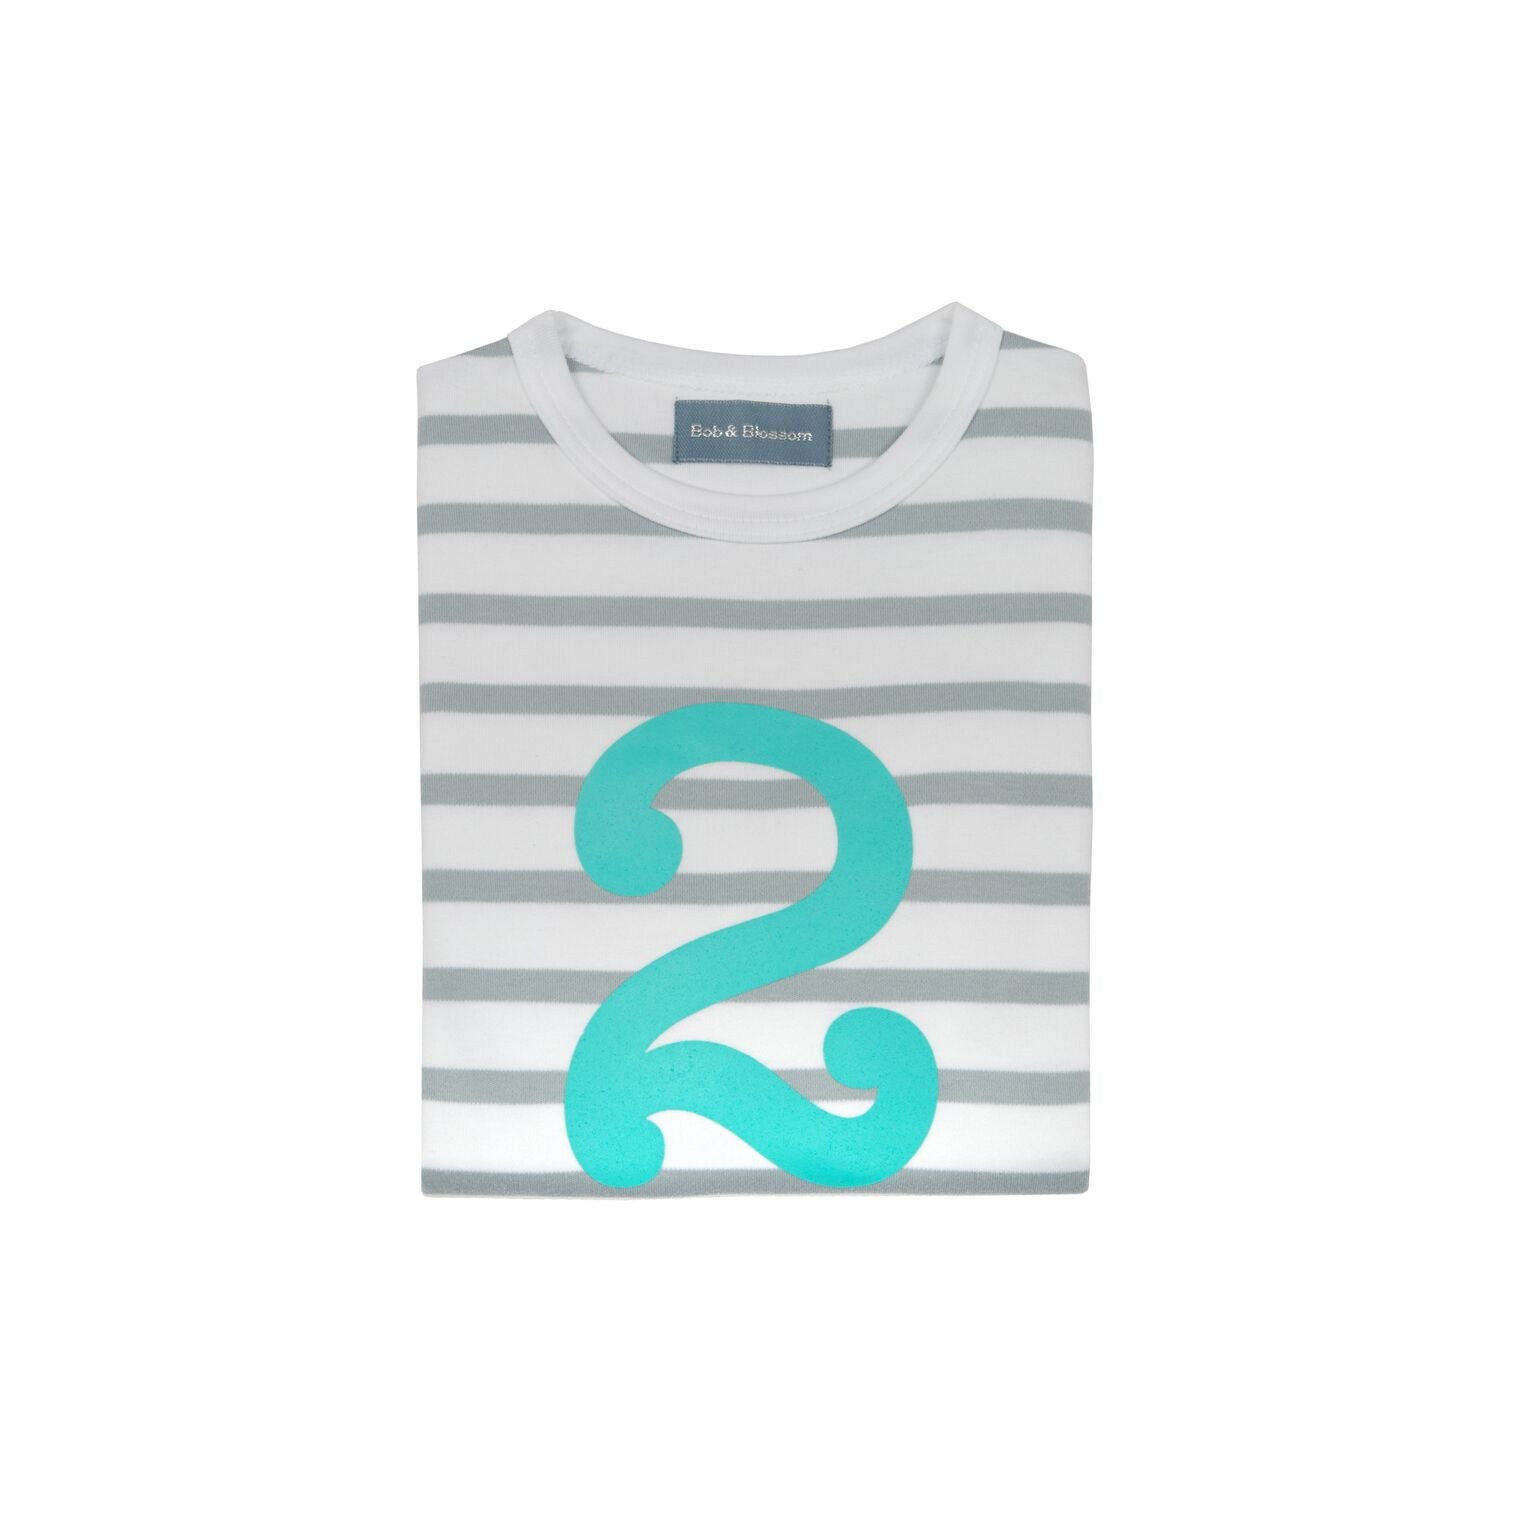 Grey & Turq Breton - Number 2 T-shirt - Bob & Blossom - how-i-wonder